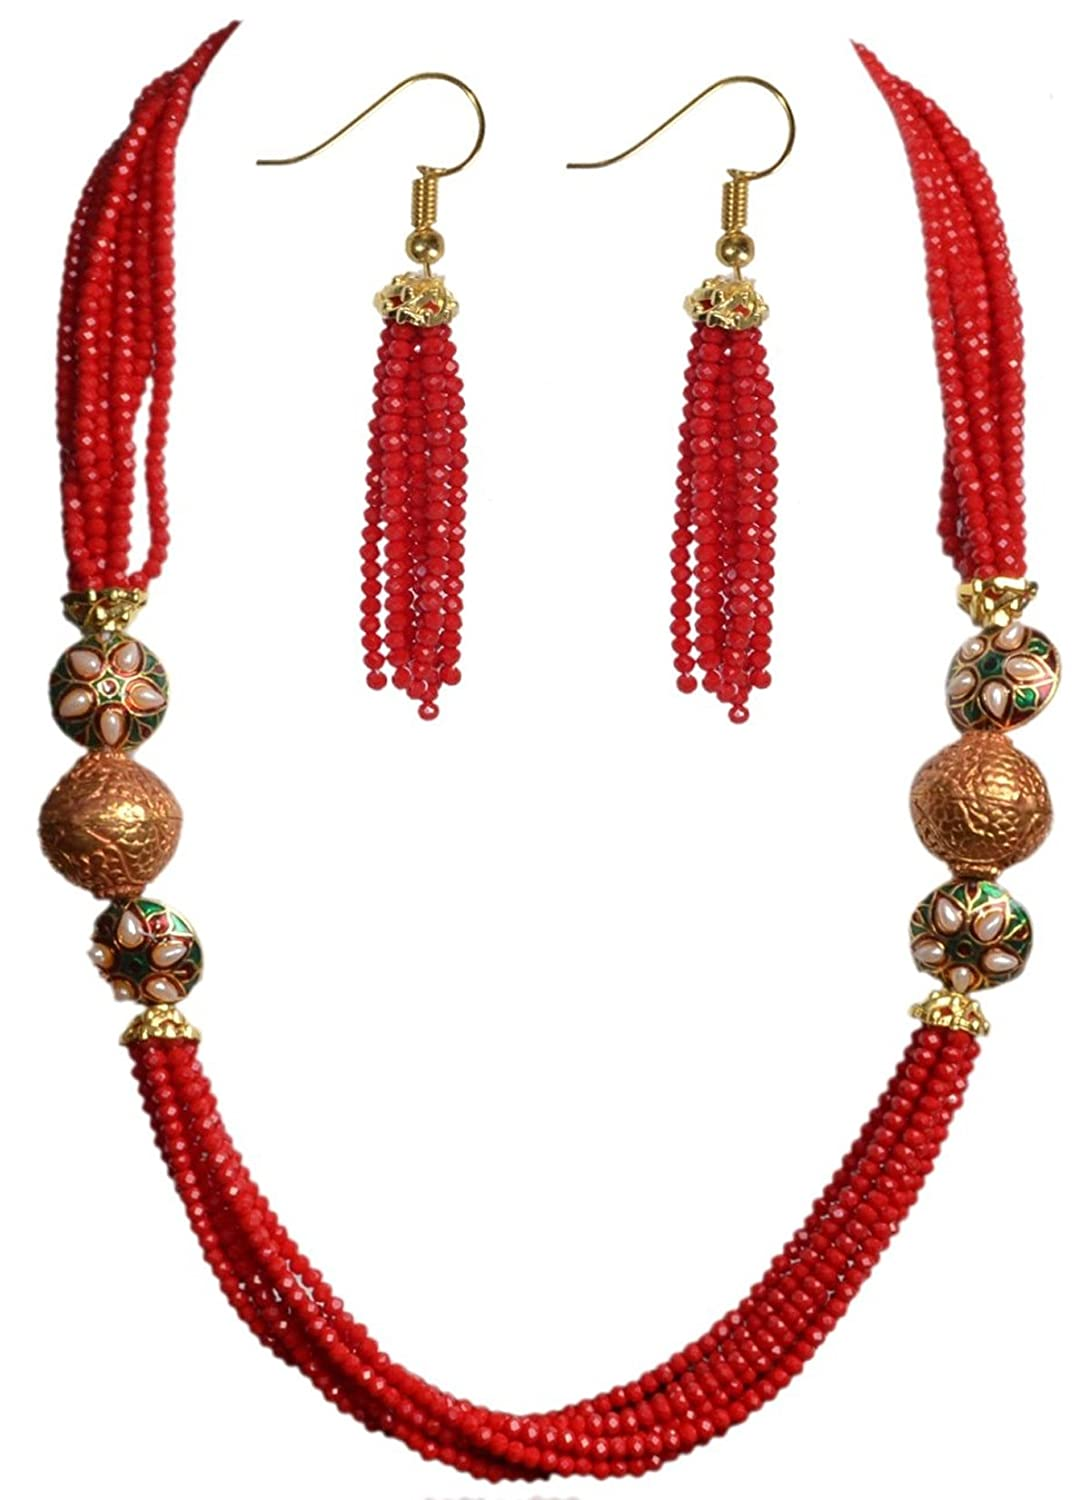 Sansar India Red Glass Indian Necklace Tassel & Earring Jewelry Set for Women 844